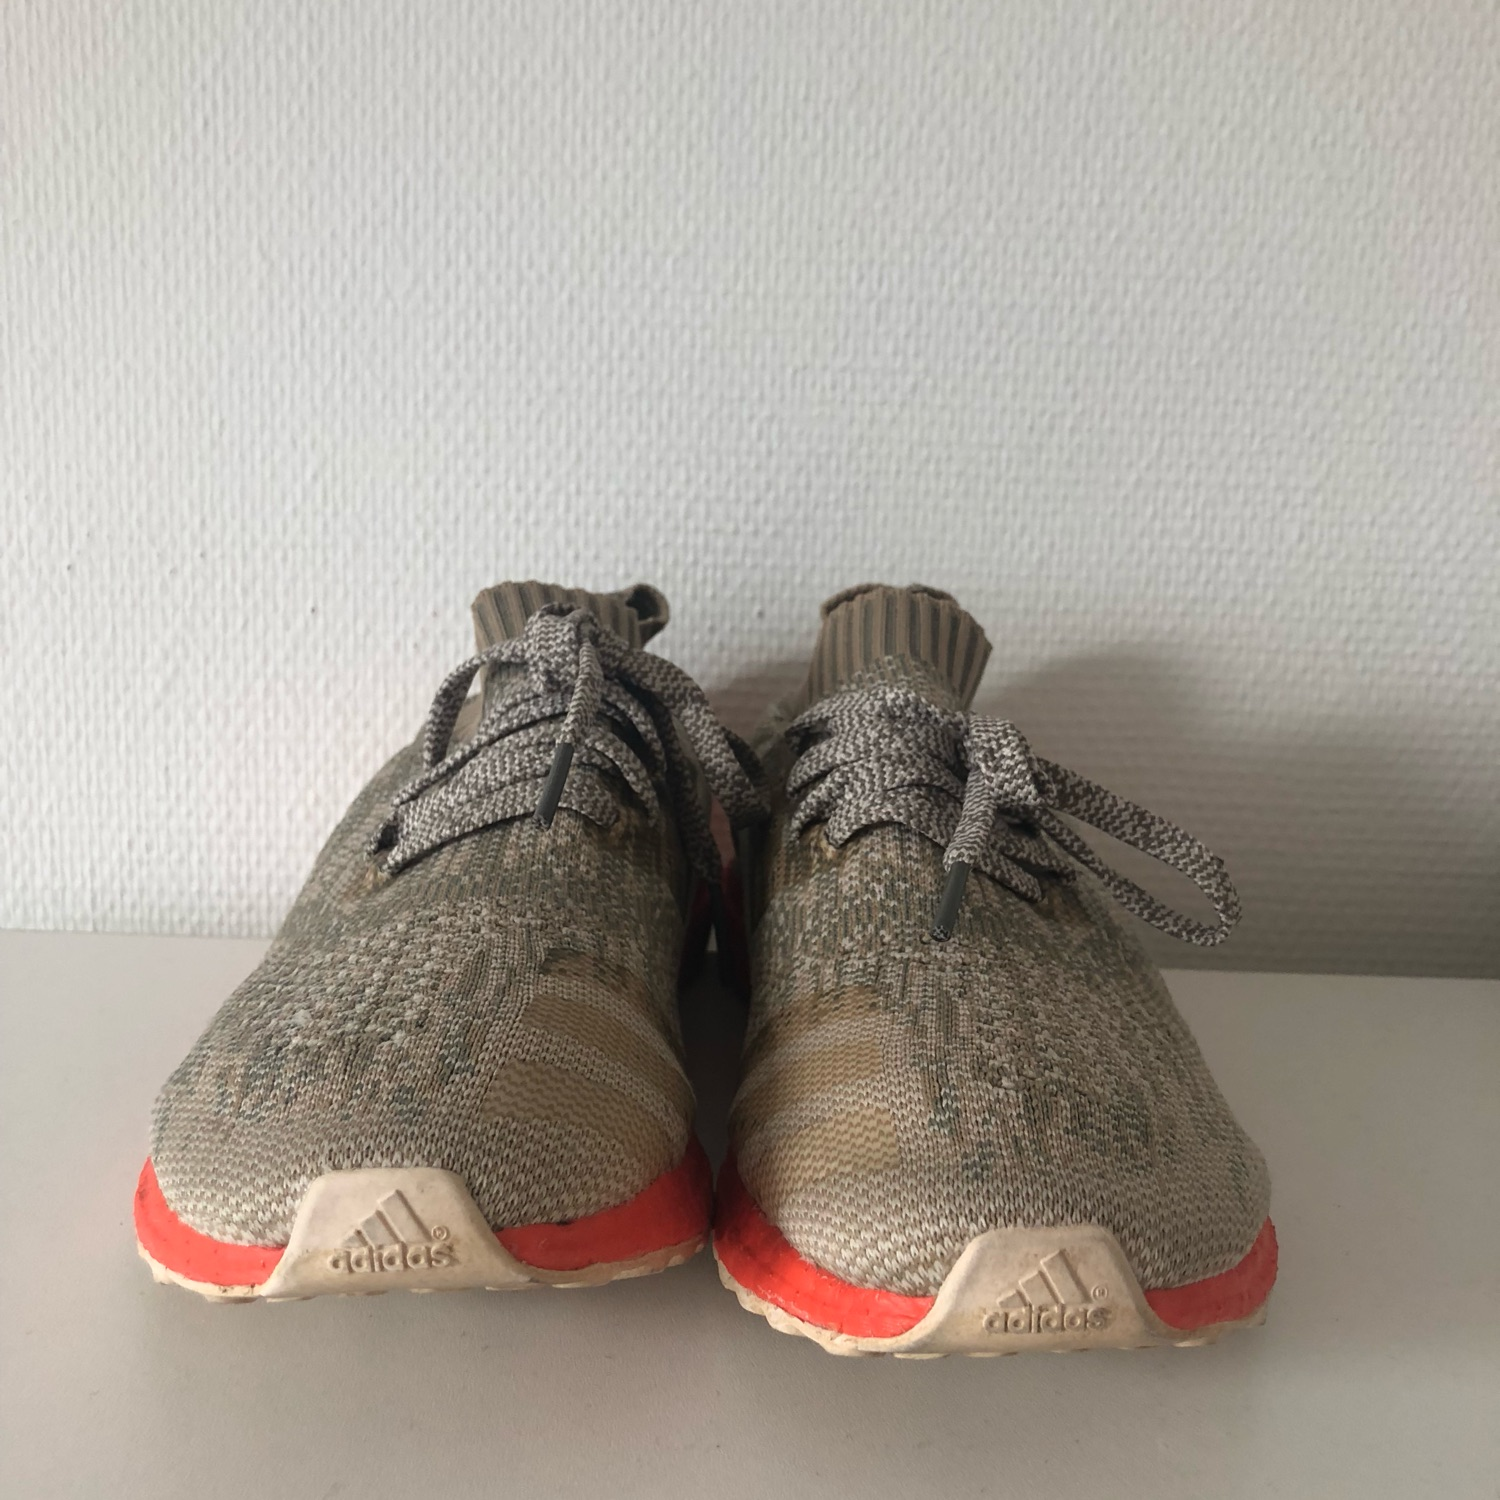 new arrival b14f4 1905a Adidas Ultra Boost Uncaged 'Trace Cargo'